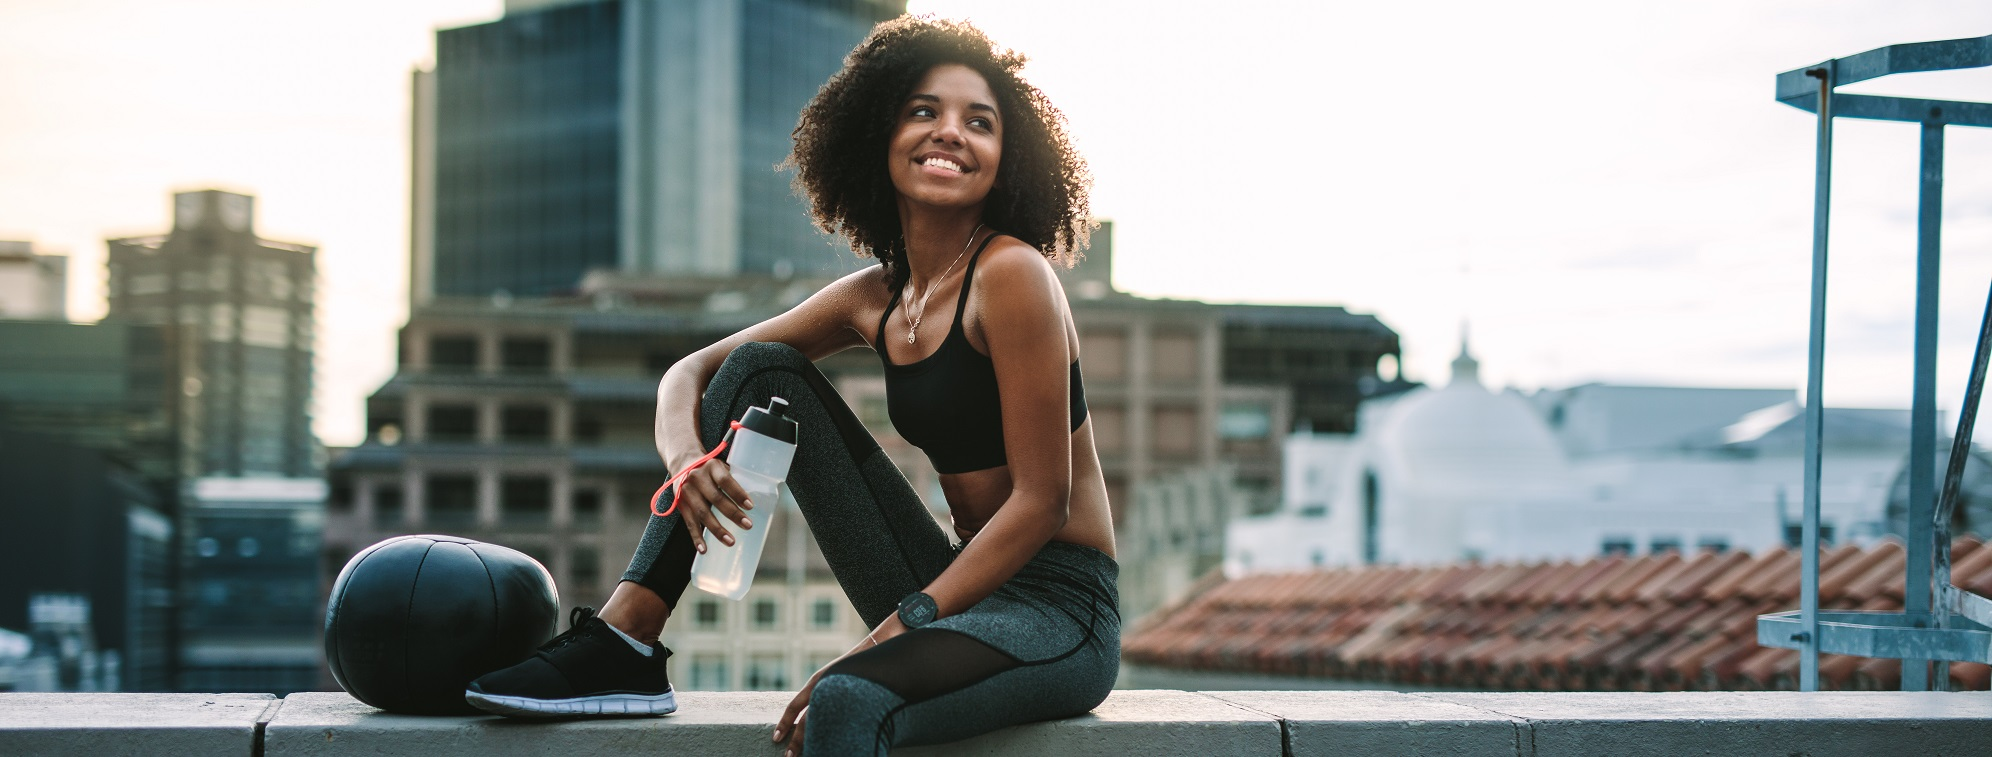 Working Out Twice a Day: Should You Do It?